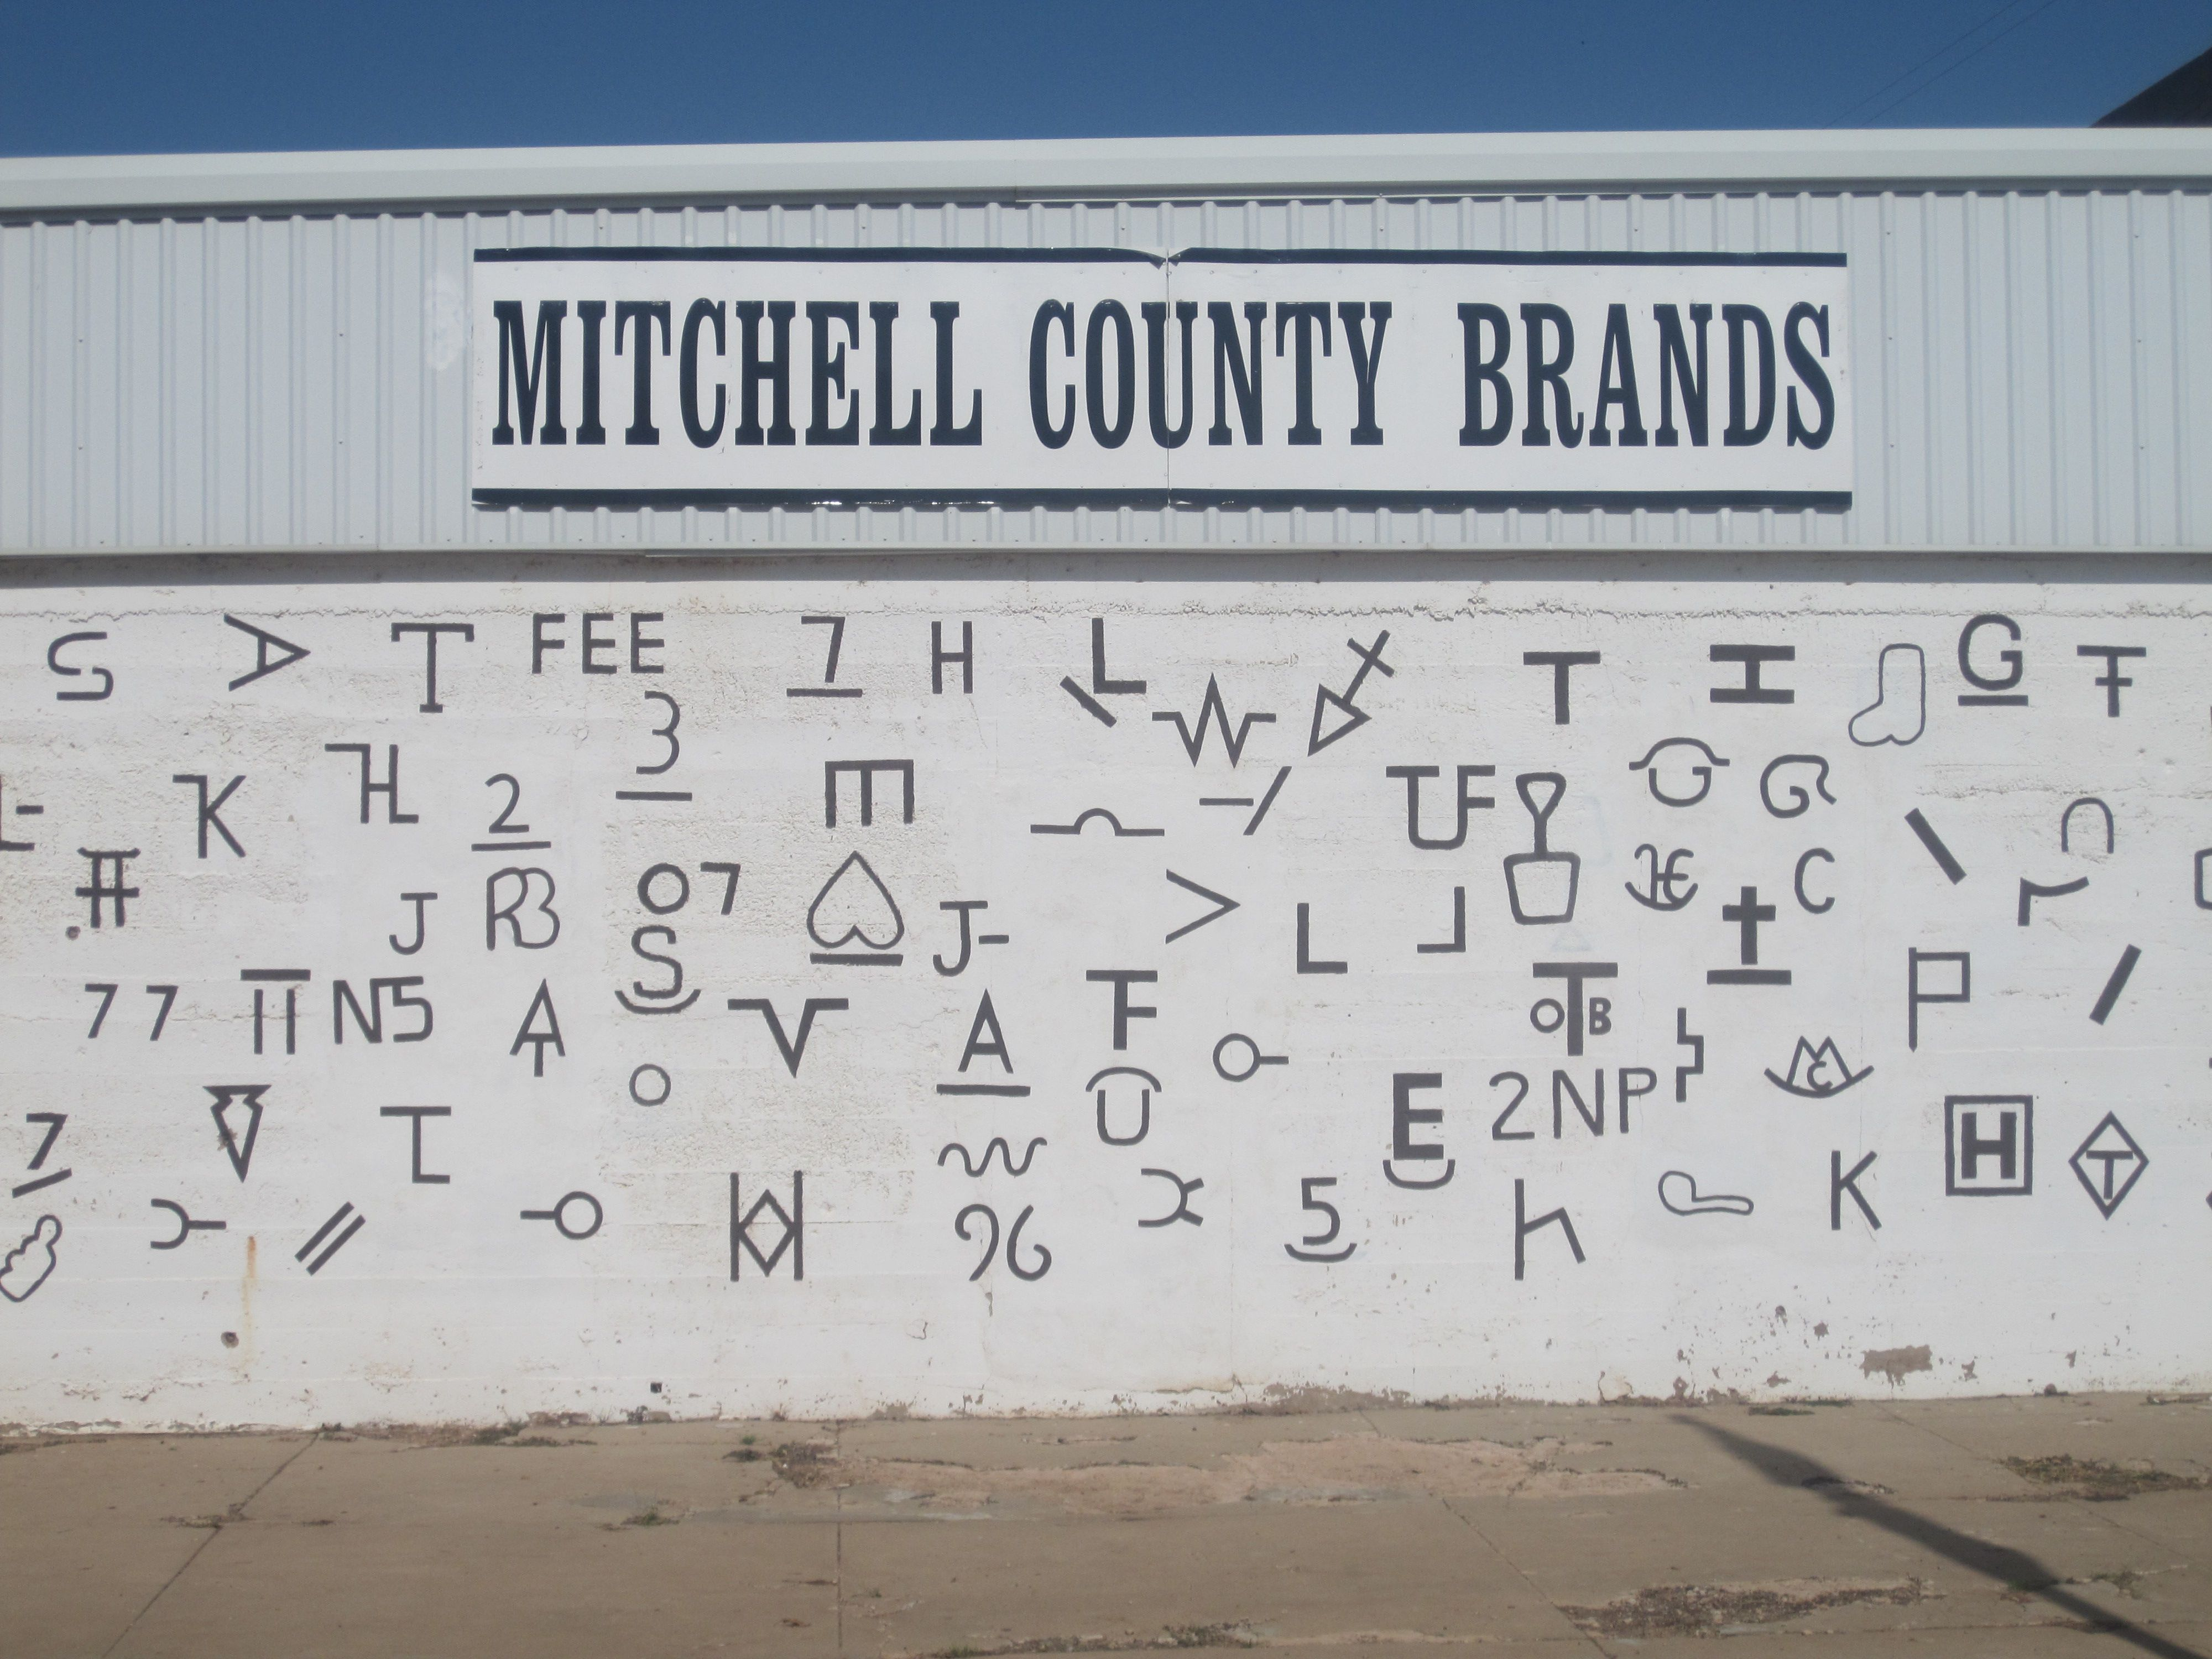 Pin by spencer sholly rtrarrt on livestock brands ranch signs cattle brands in mitchell county tx img 4547 livestock branding wikipedia the free encyclopedia buycottarizona